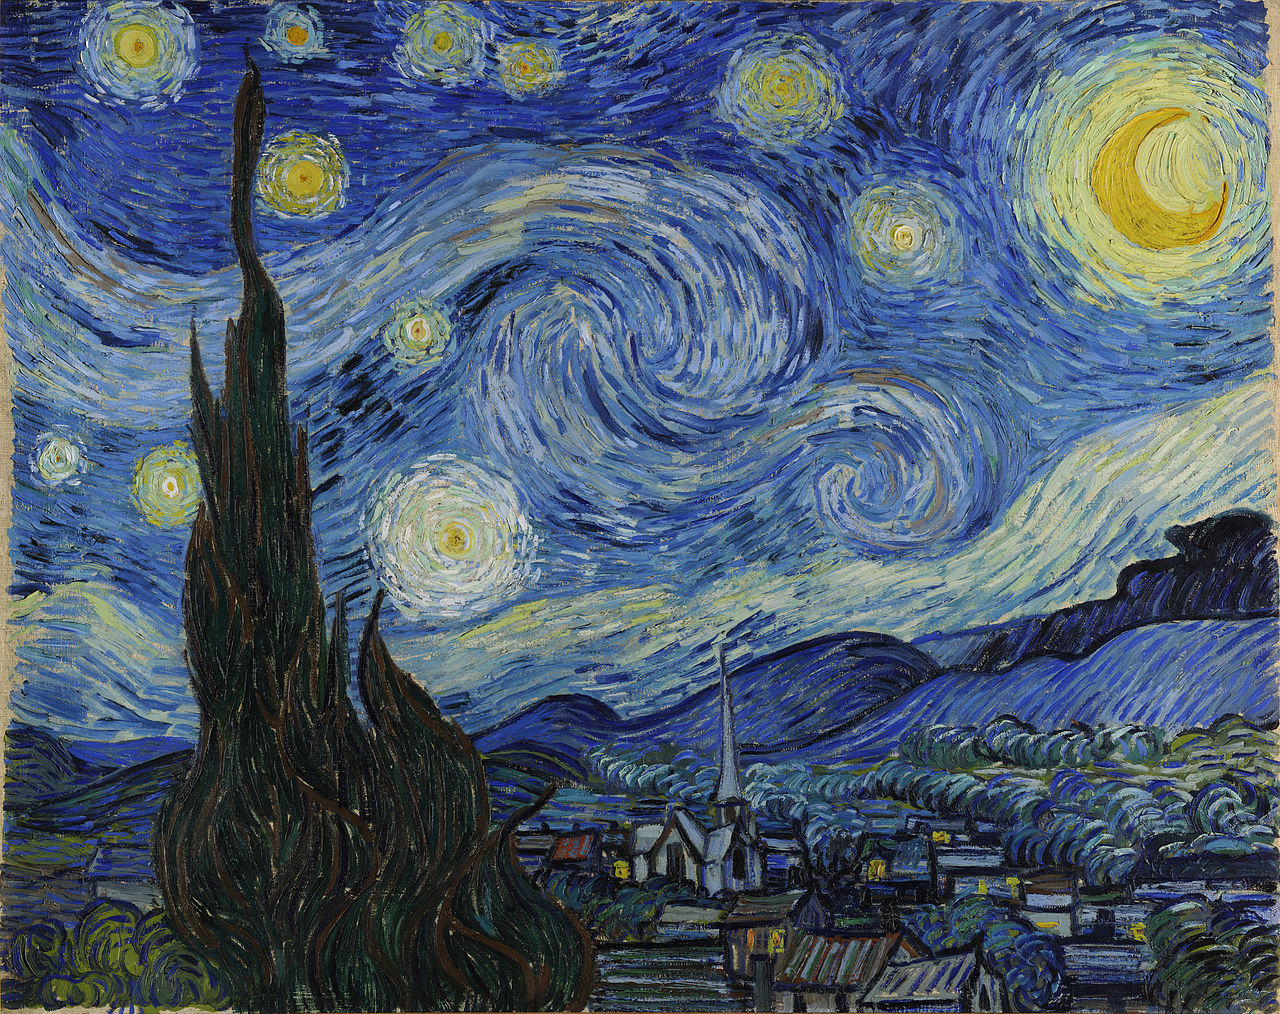 Vincent van Gogh's Starry Night painting featuring  a post-impressionistic view of a blue-toned night sky